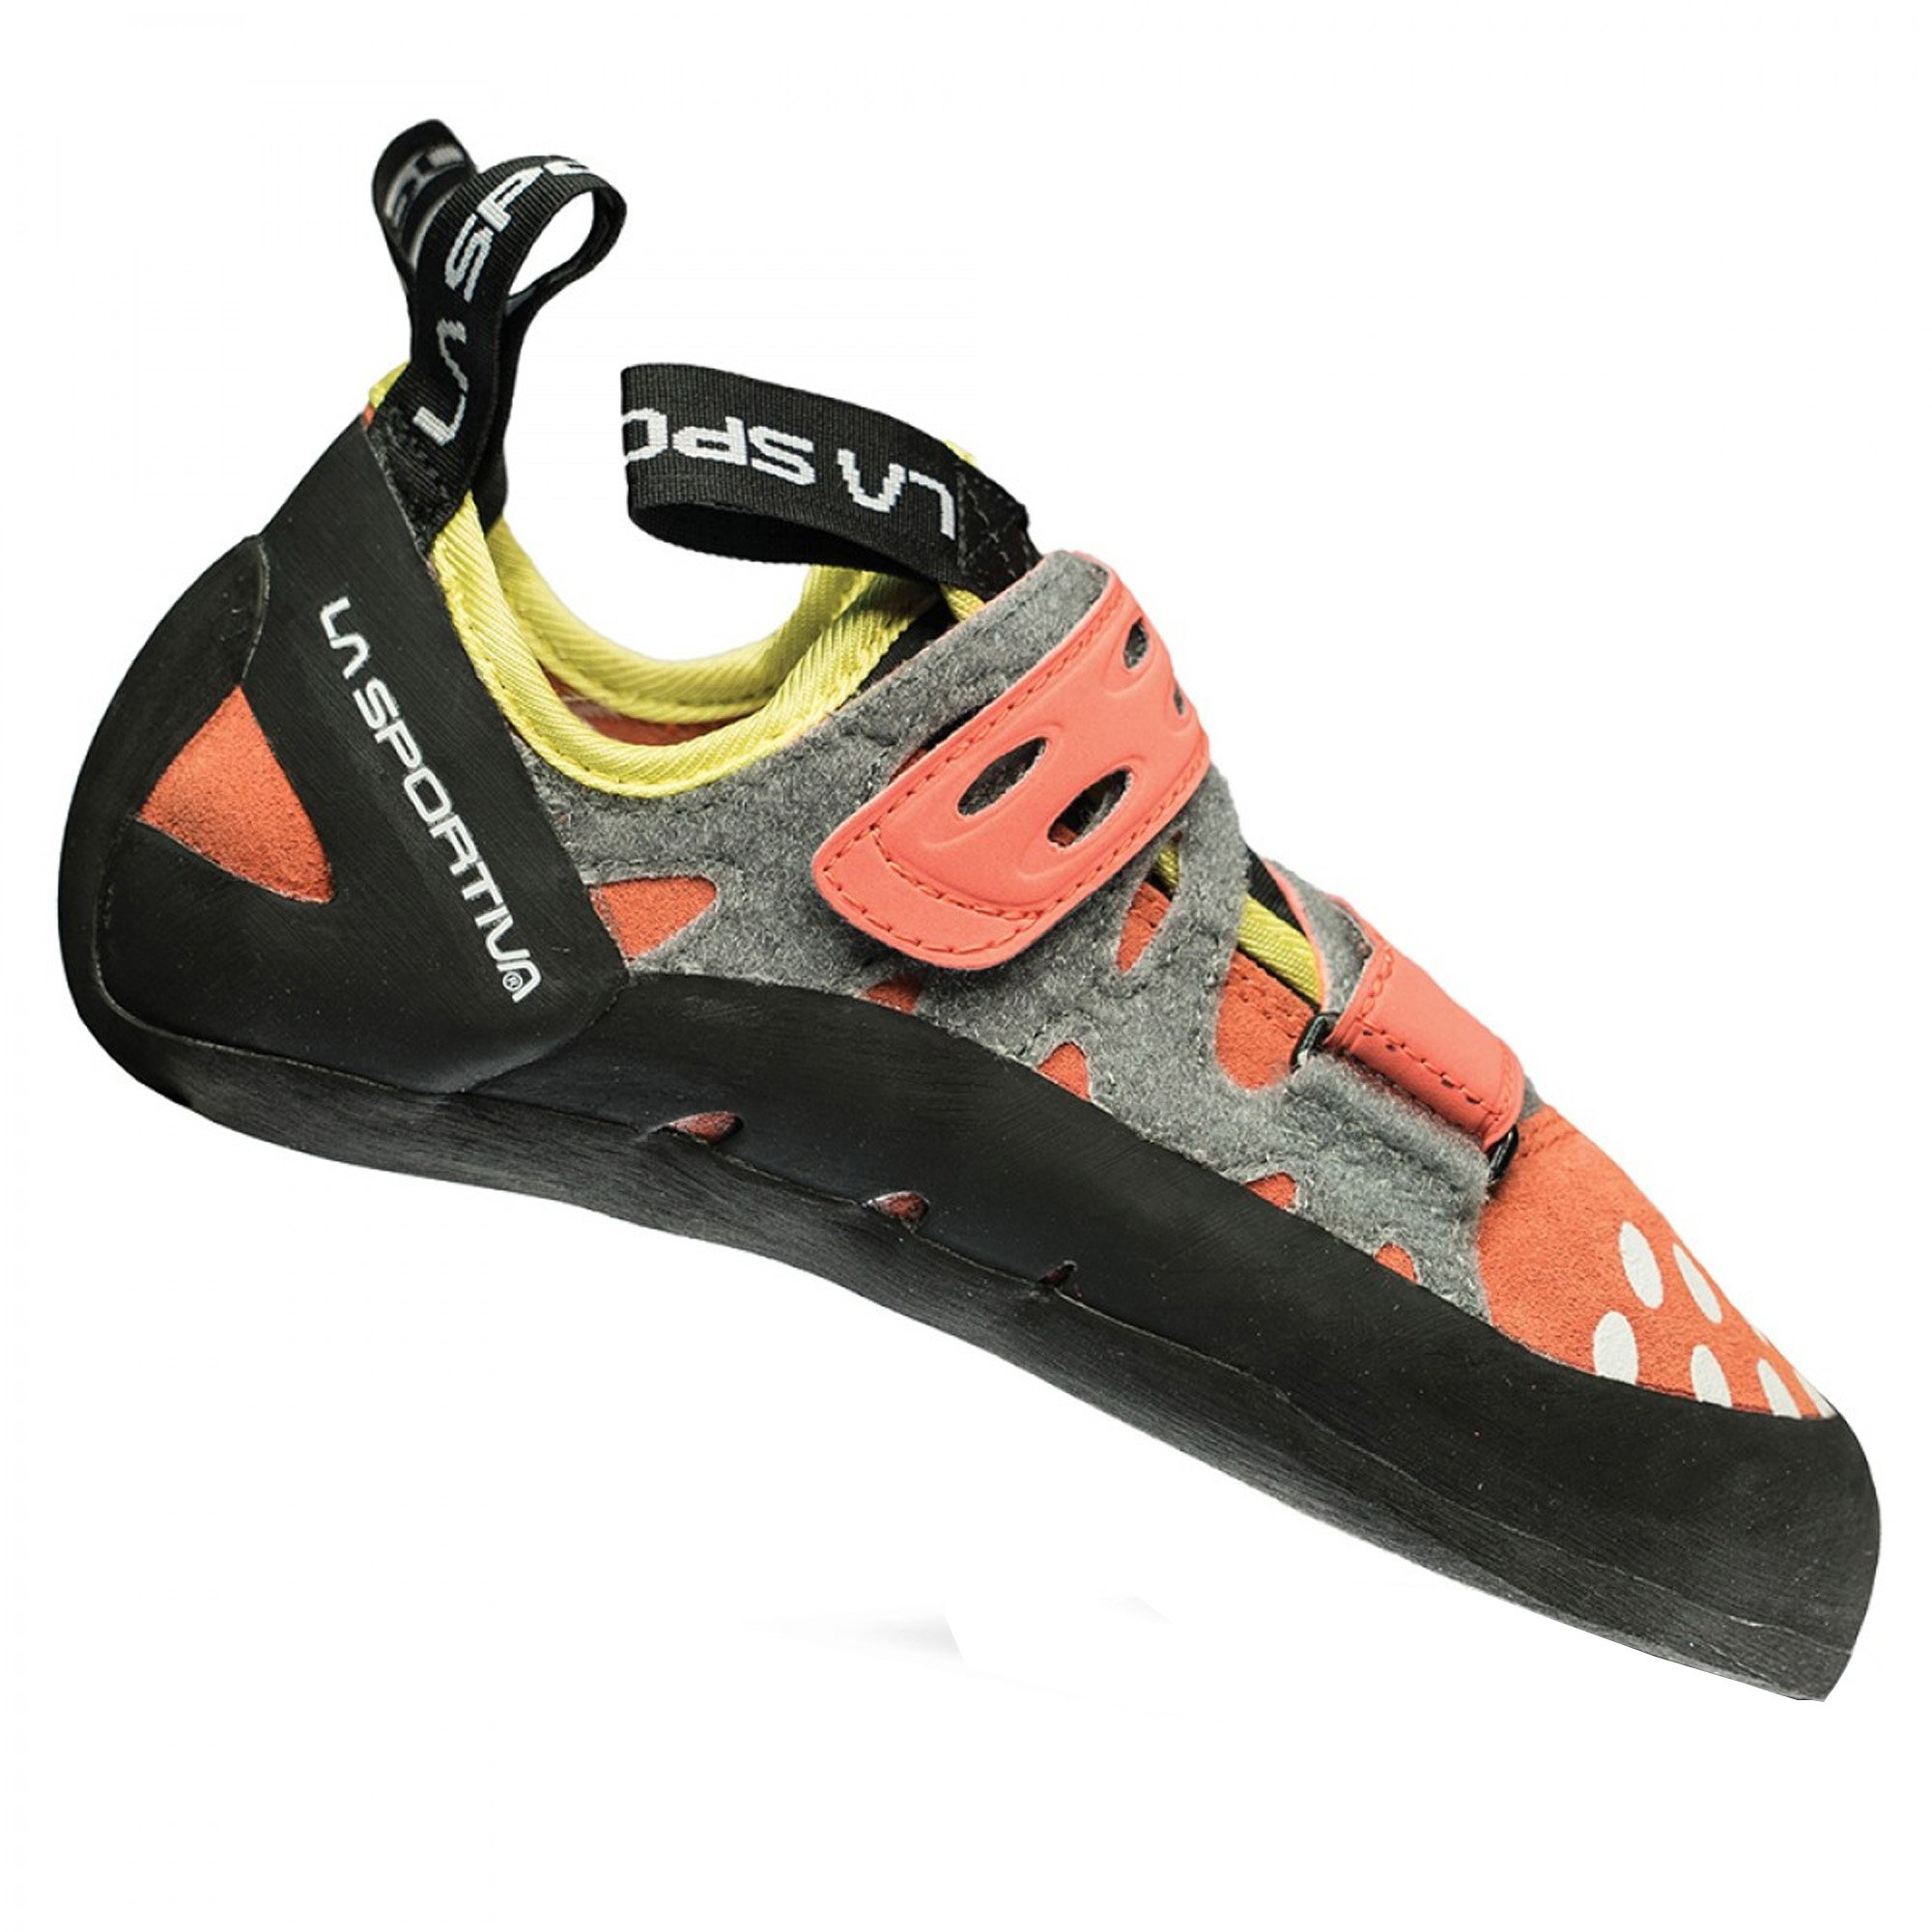 La Sportiva Women's Tarantula Performance Rock Climbing Shoe, Coral, Medium/40 M EU/8.5 B(M) US